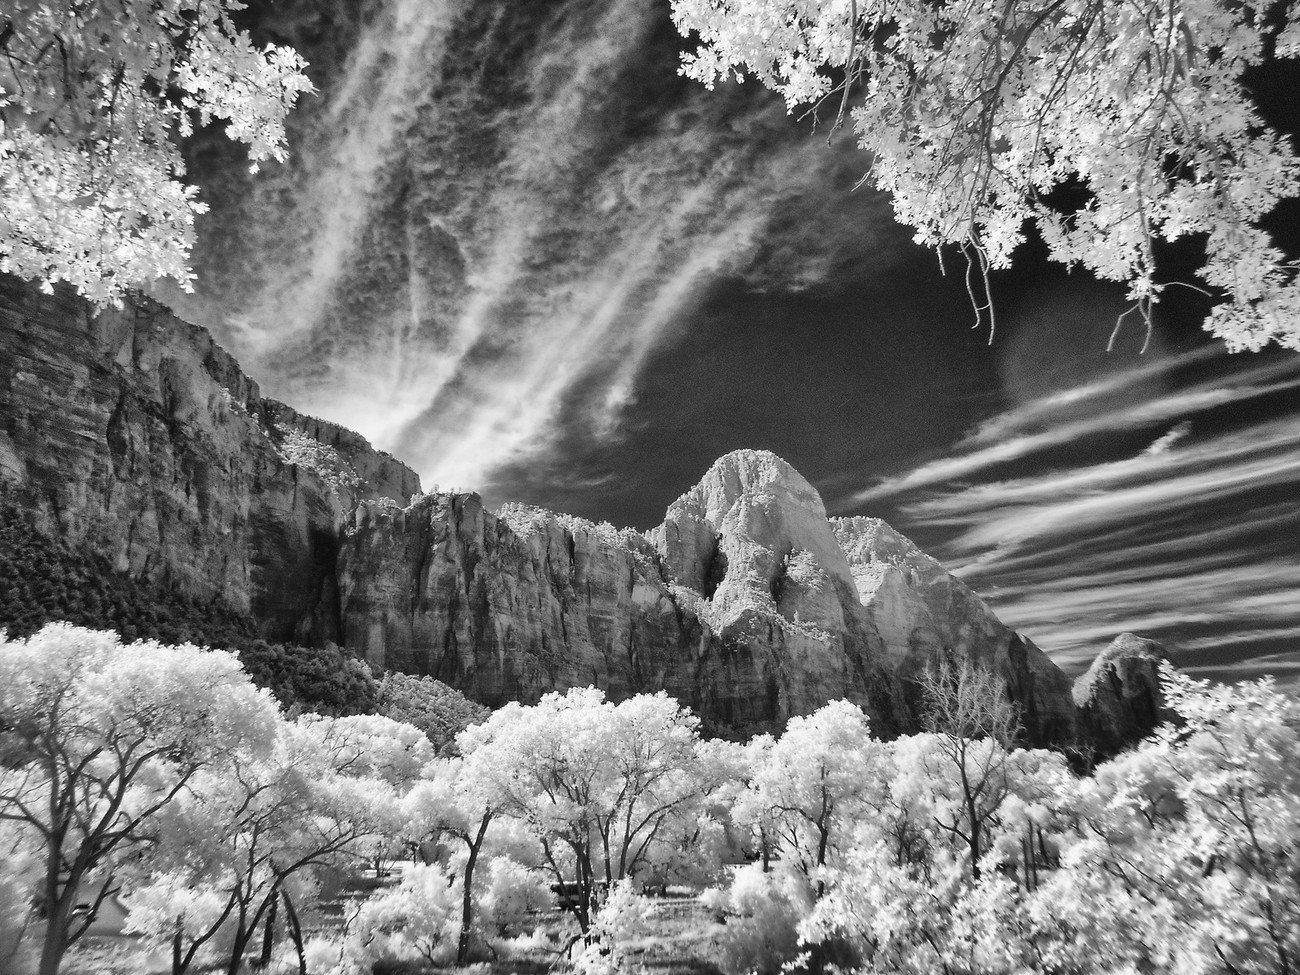 Taken with converted infrared Nikon L28 point and shoot.